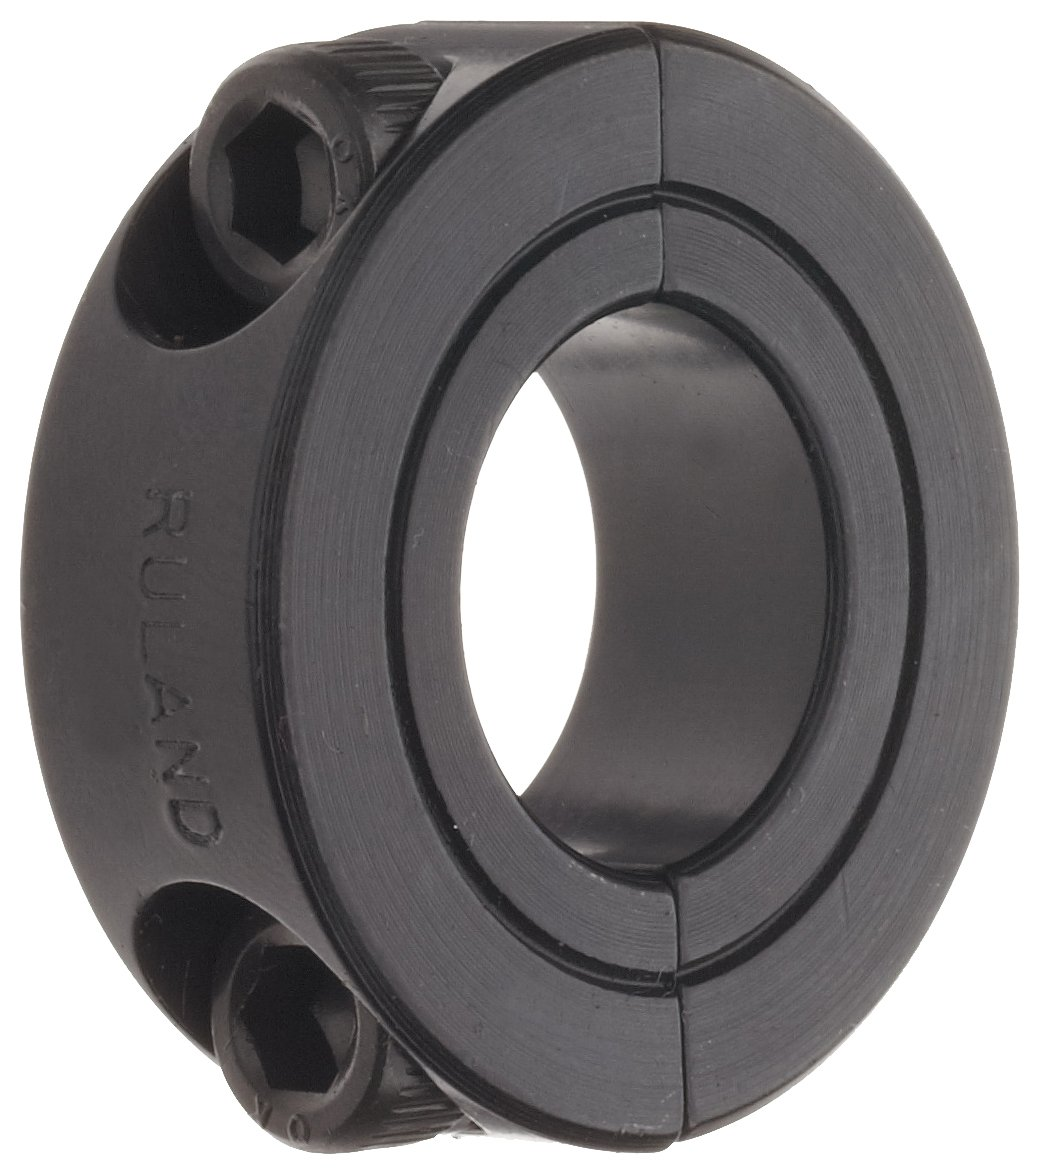 Ruland SP-63-F Two-Piece Clamping Shaft Stee Oxide Collar Kansas City Spring new work one after another Mall Black